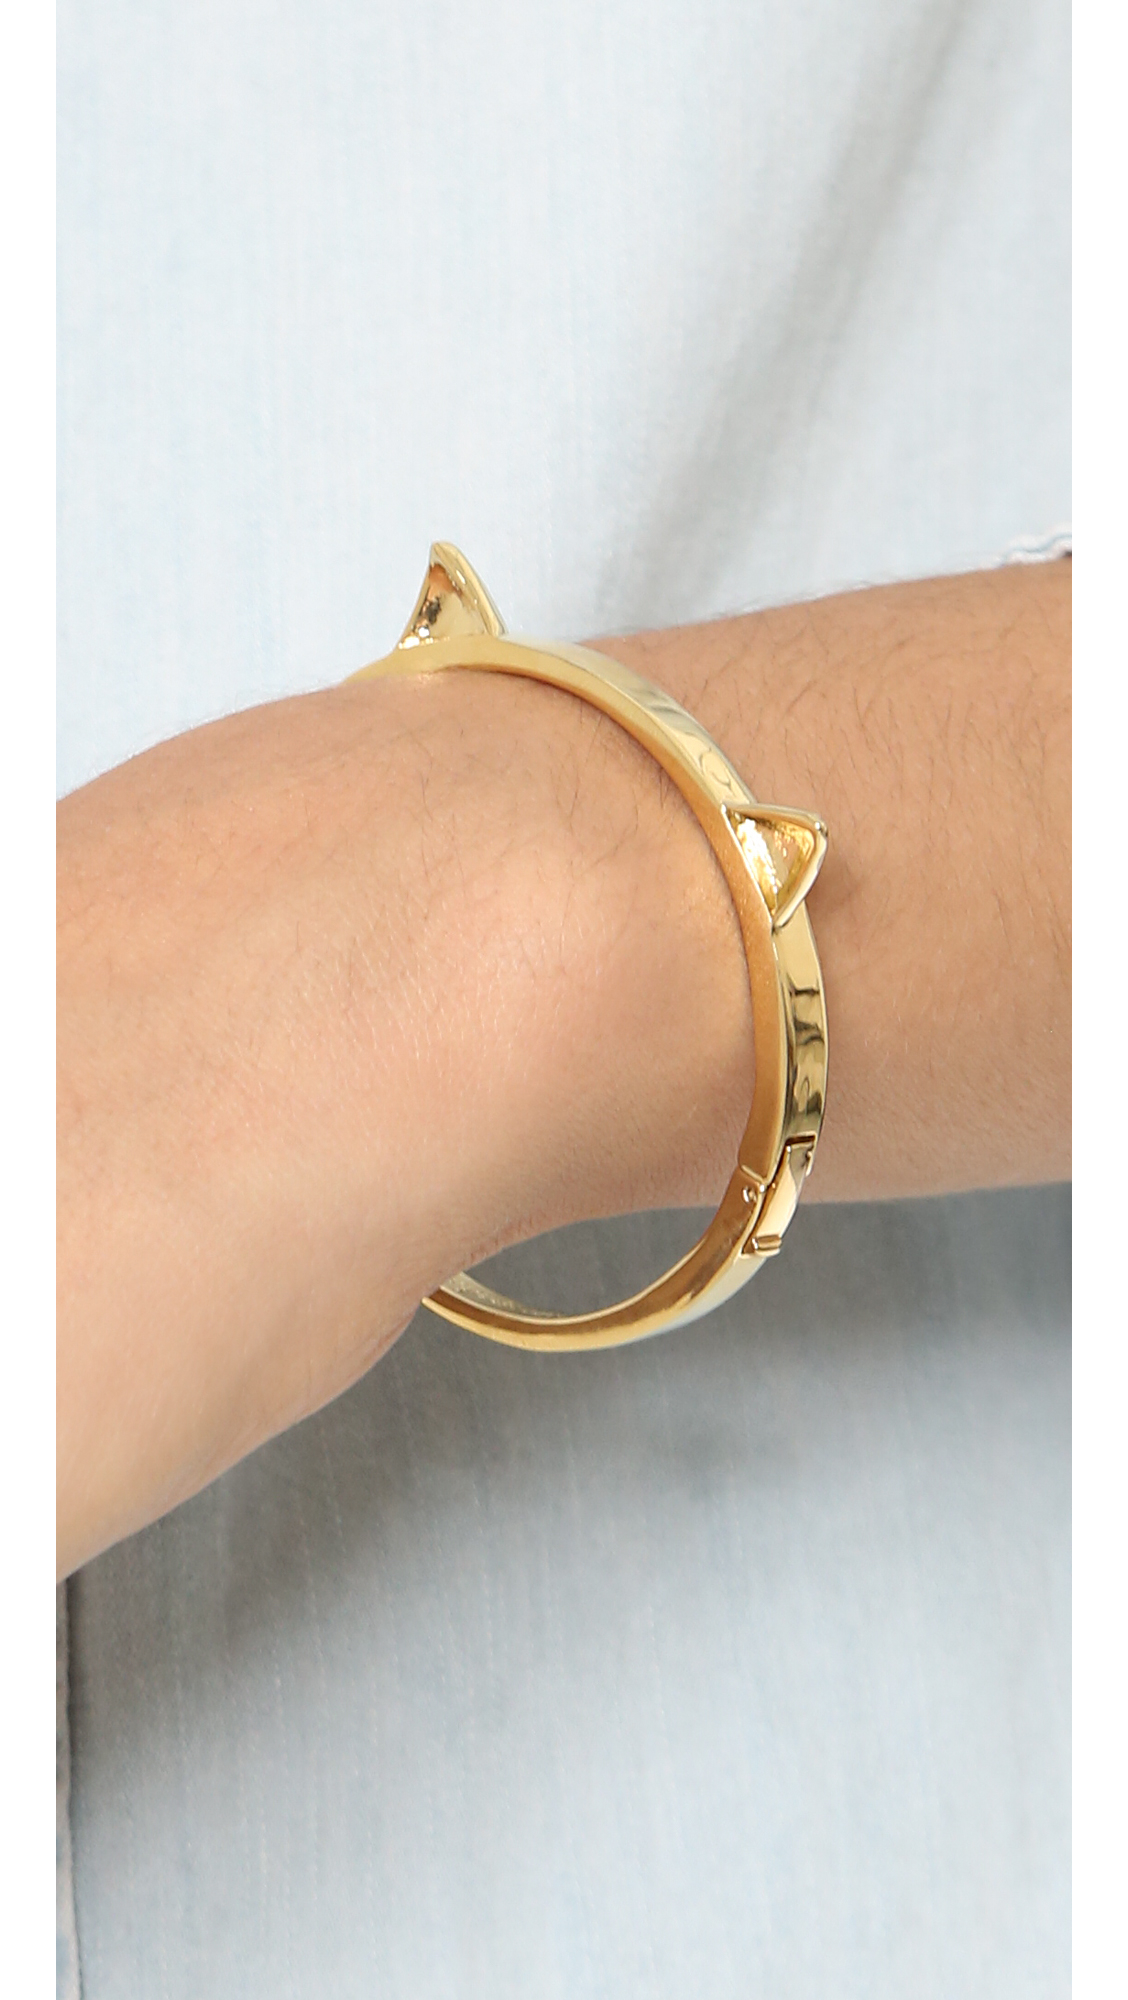 Lyst Kate Spade New York Out Of The Bag Bangle Bracelet Gold In